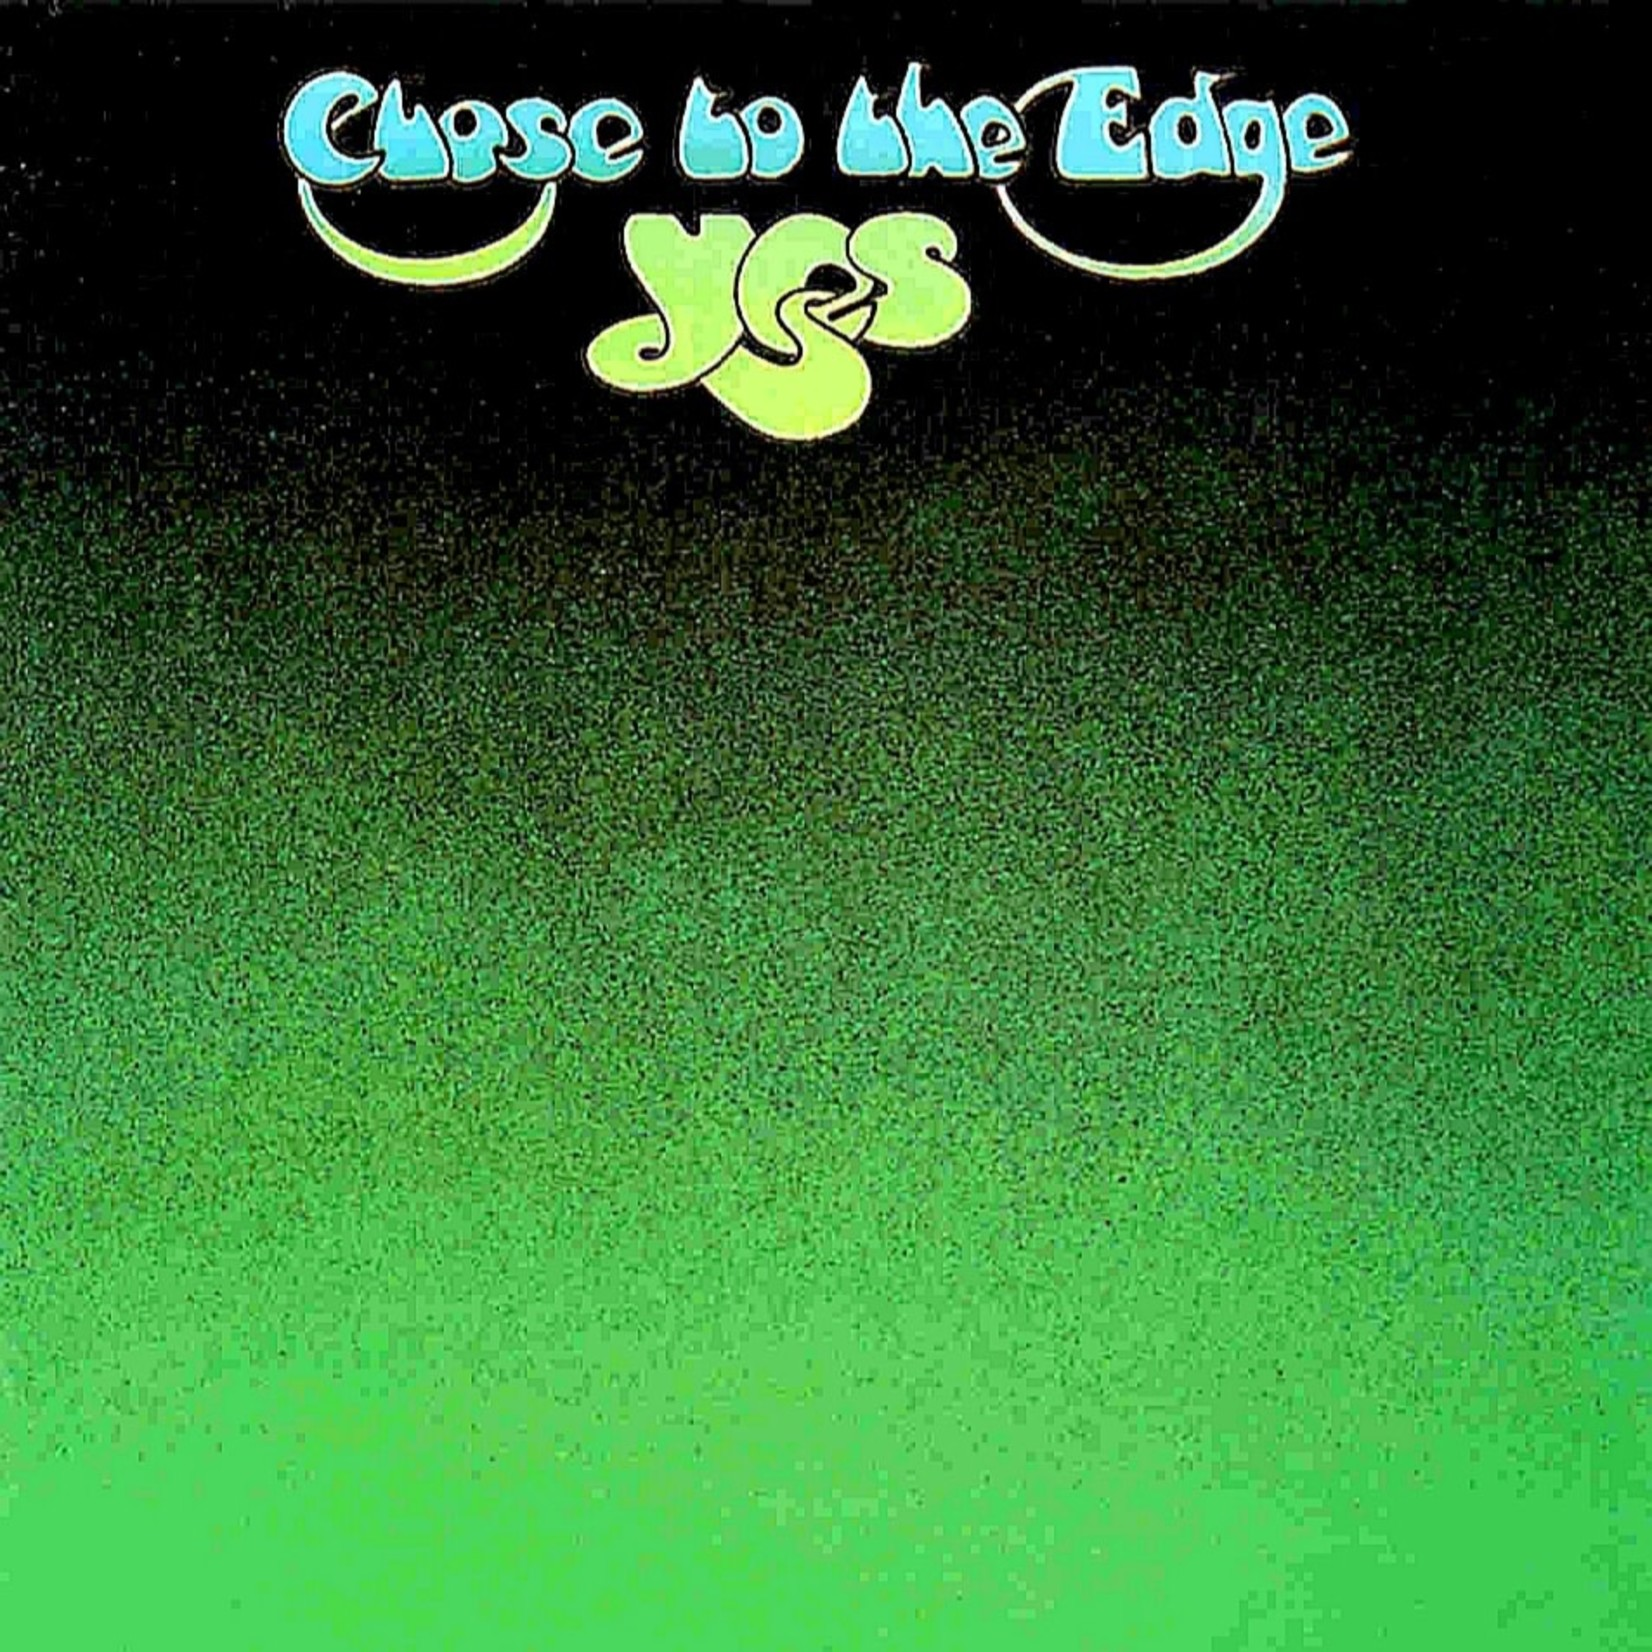 [Vintage] Yes: Close to the Edge